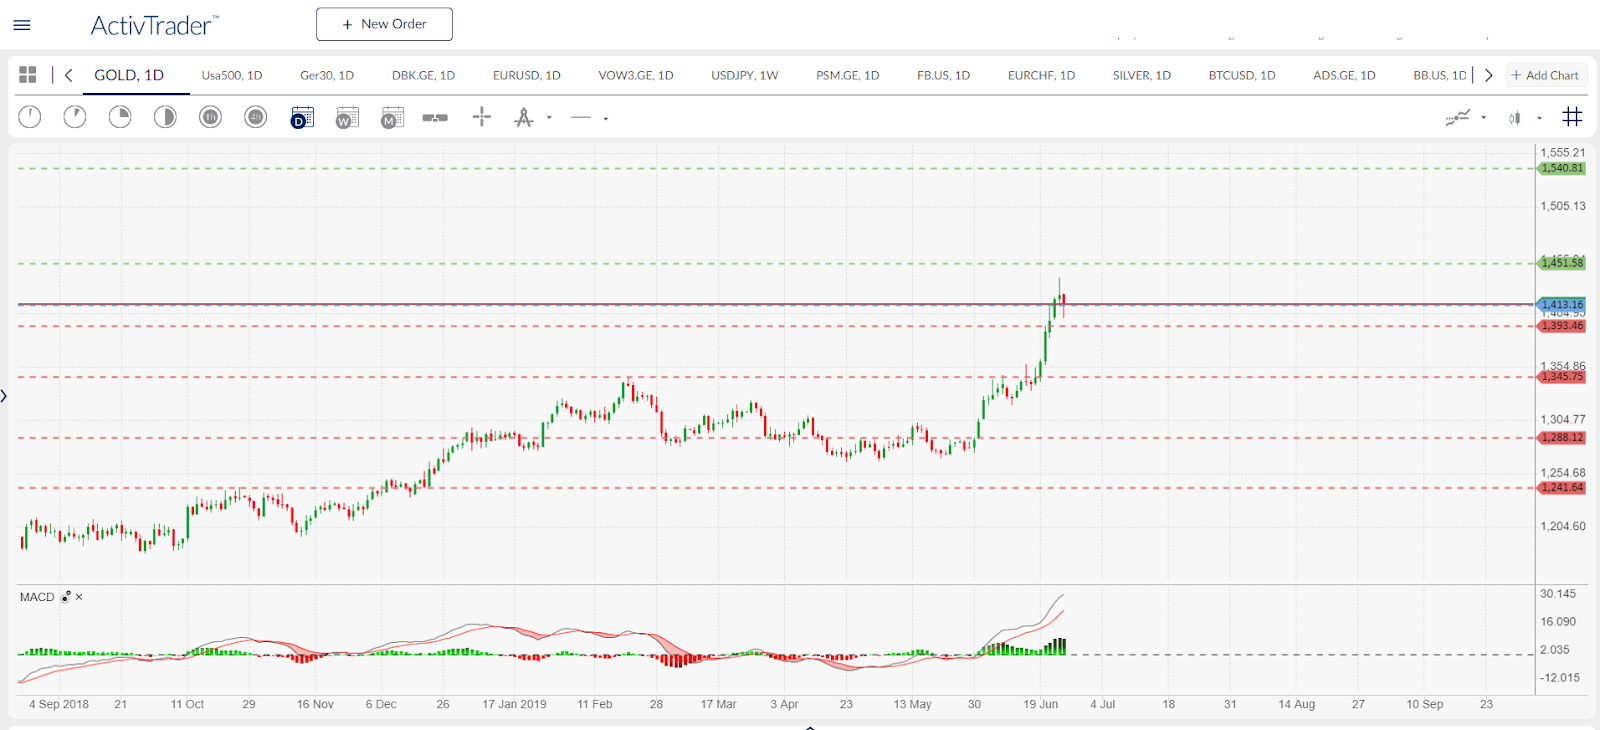 GOLD Daily Chart ActivTrader